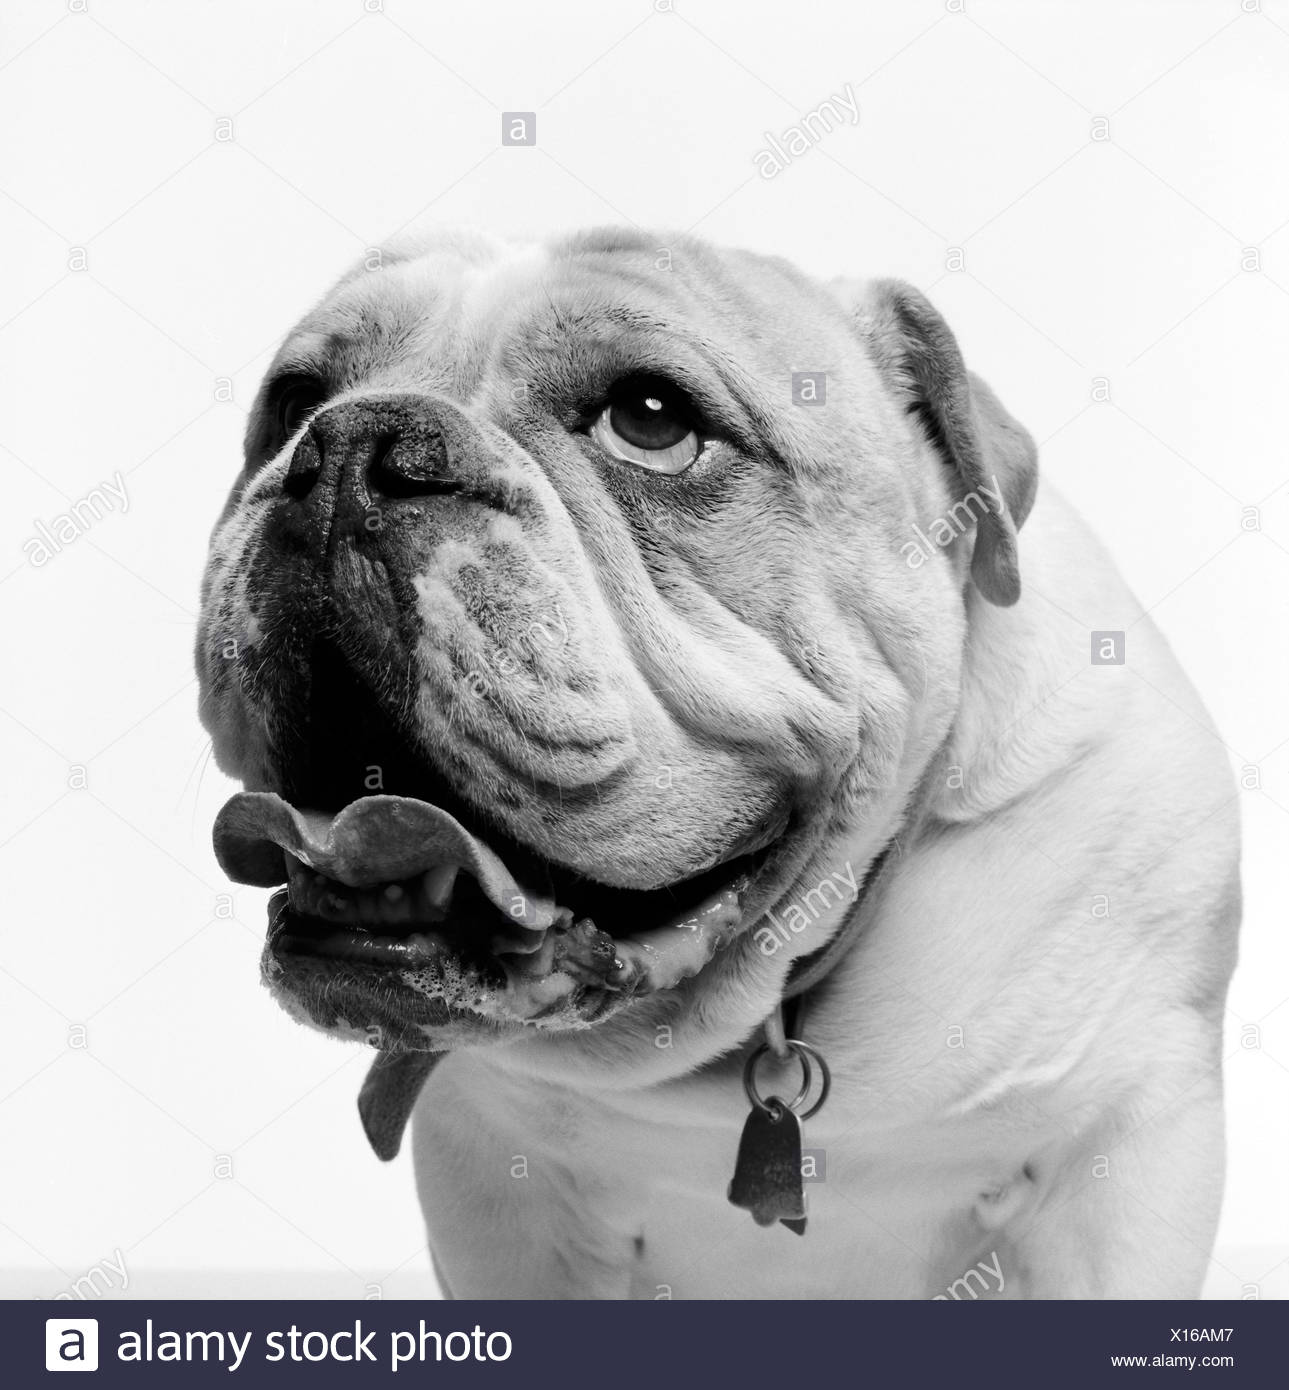 Dog Mouth Open Black and White Stock Photos & Images - Alamy